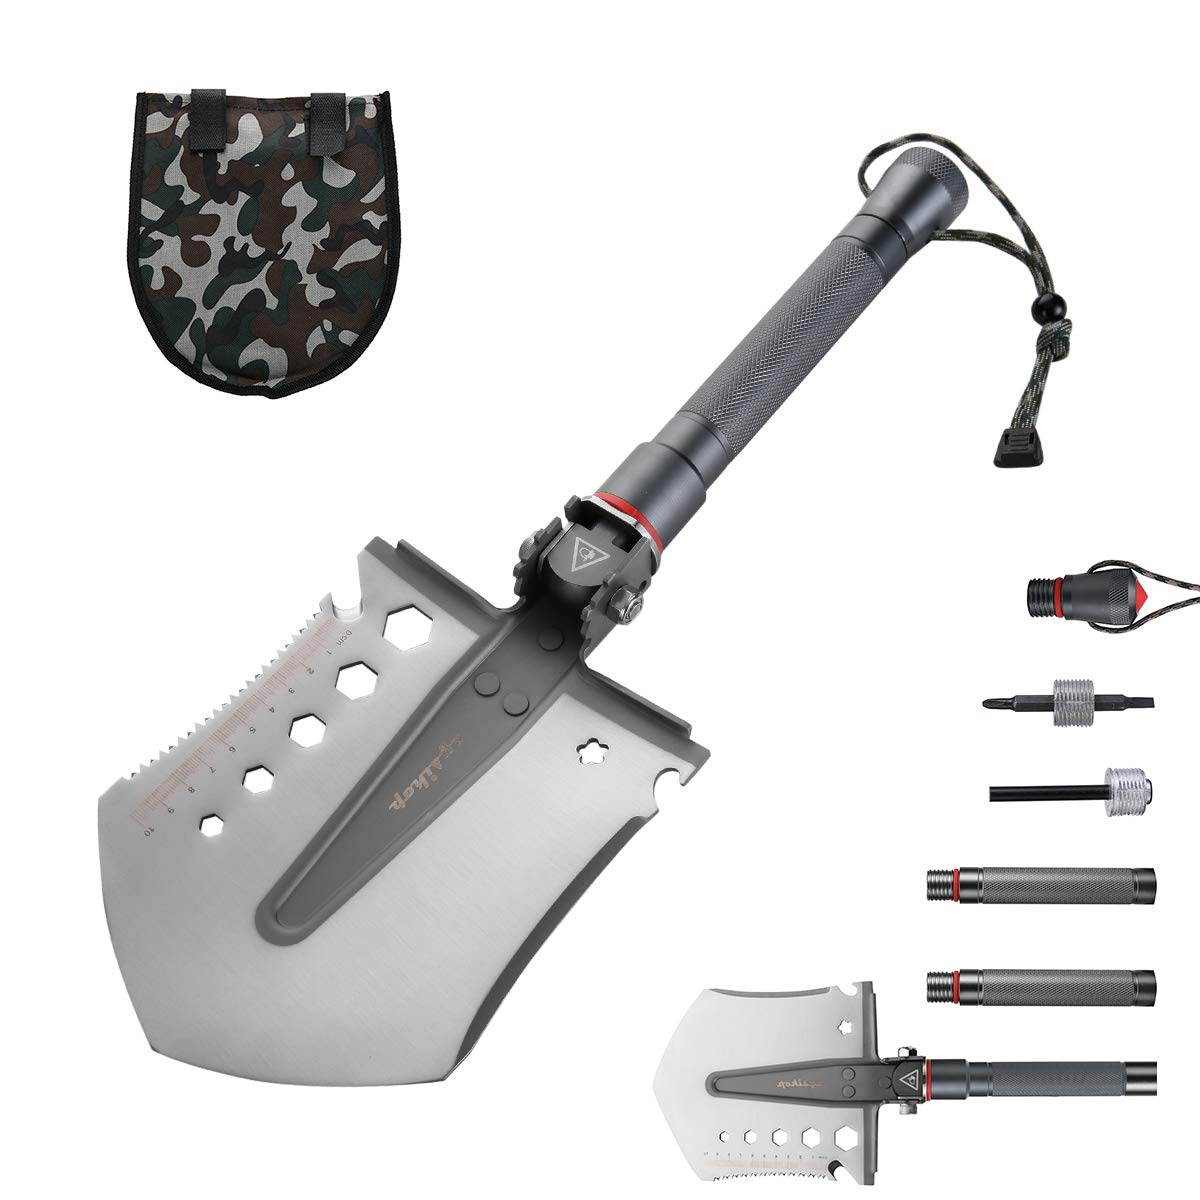 Cysikop Extended Military Folding Snow Shovel, Survival Entrenching Tool with Carrying Pouch Metal Handle for Hiking, Backpacking,Fishing,Car Emergency,Gardening etc.